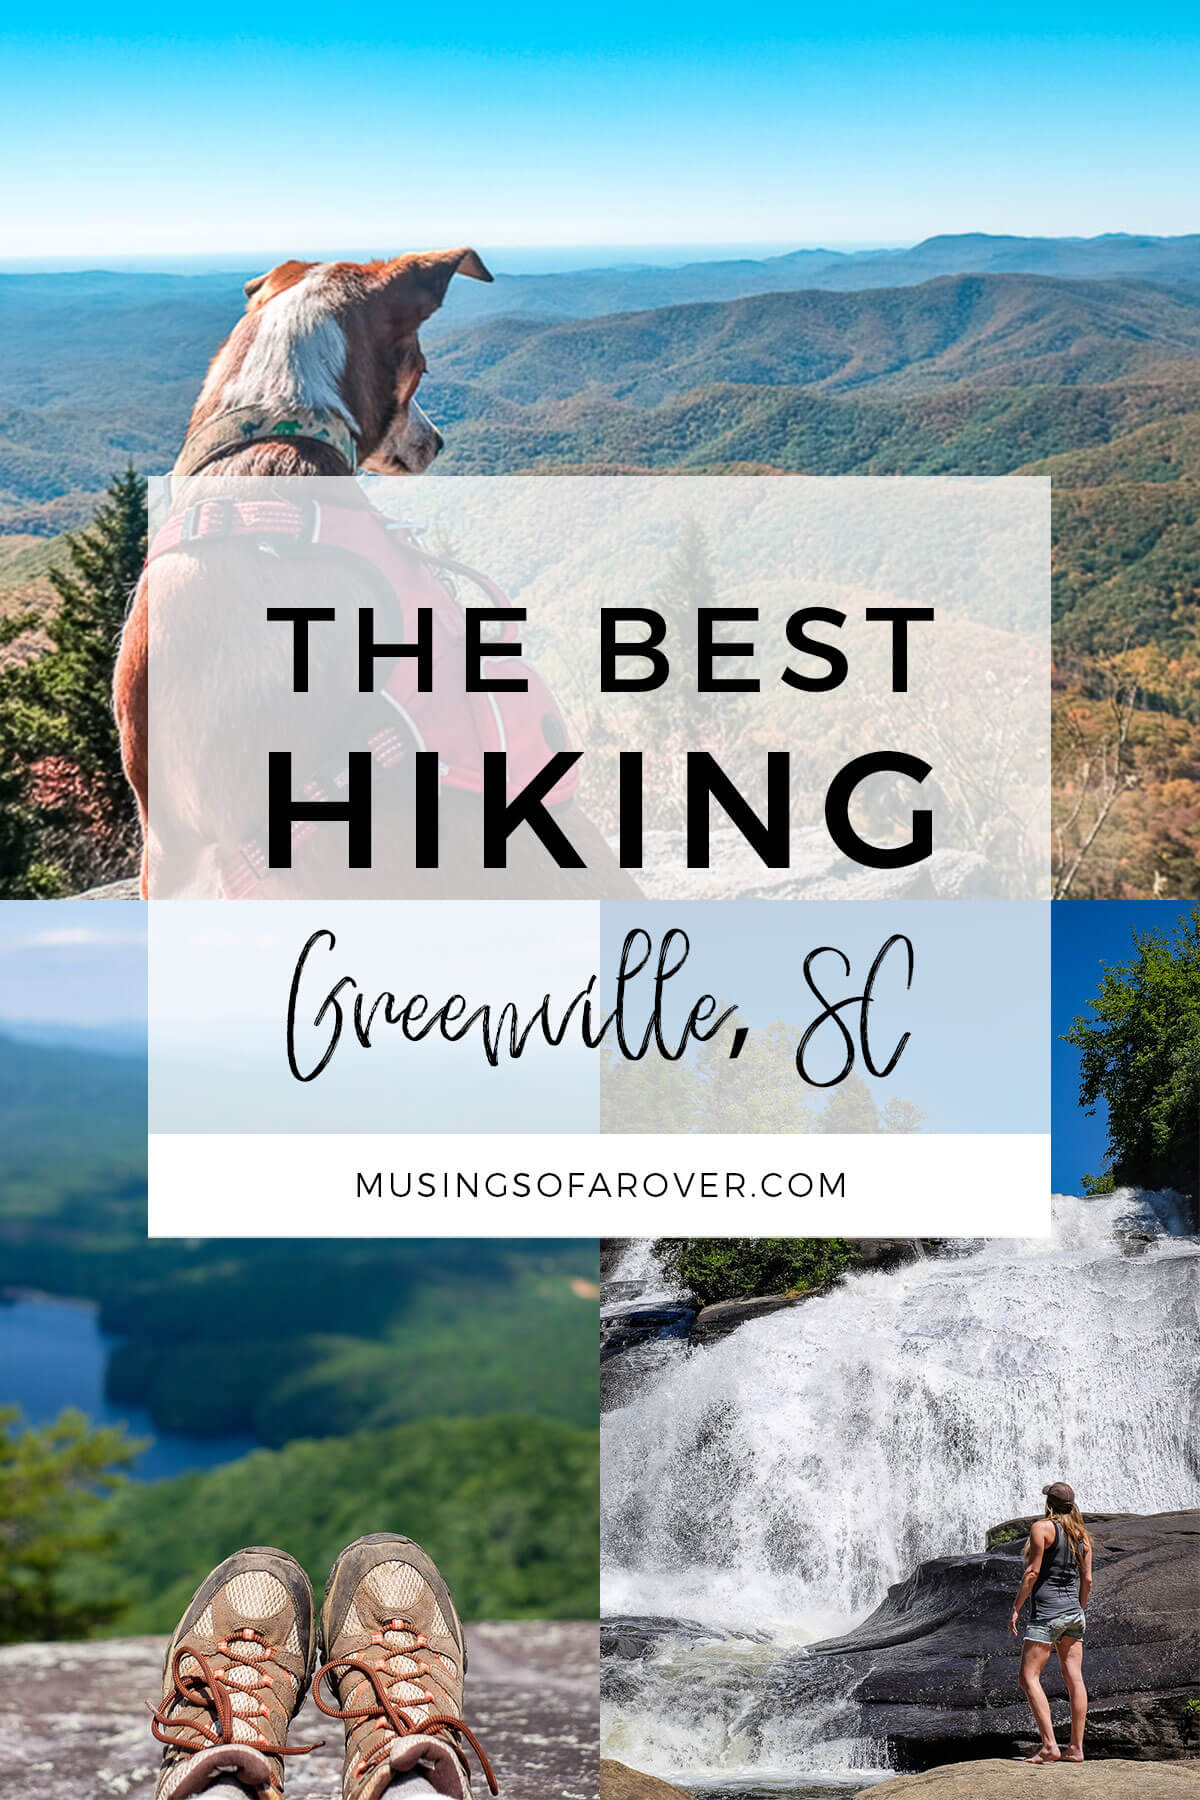 Are you looking for the best trails near Greenville, SC? Discover what South Carolina's (and North Carolina's) State Parks, Forests, and Preserves have to offer!